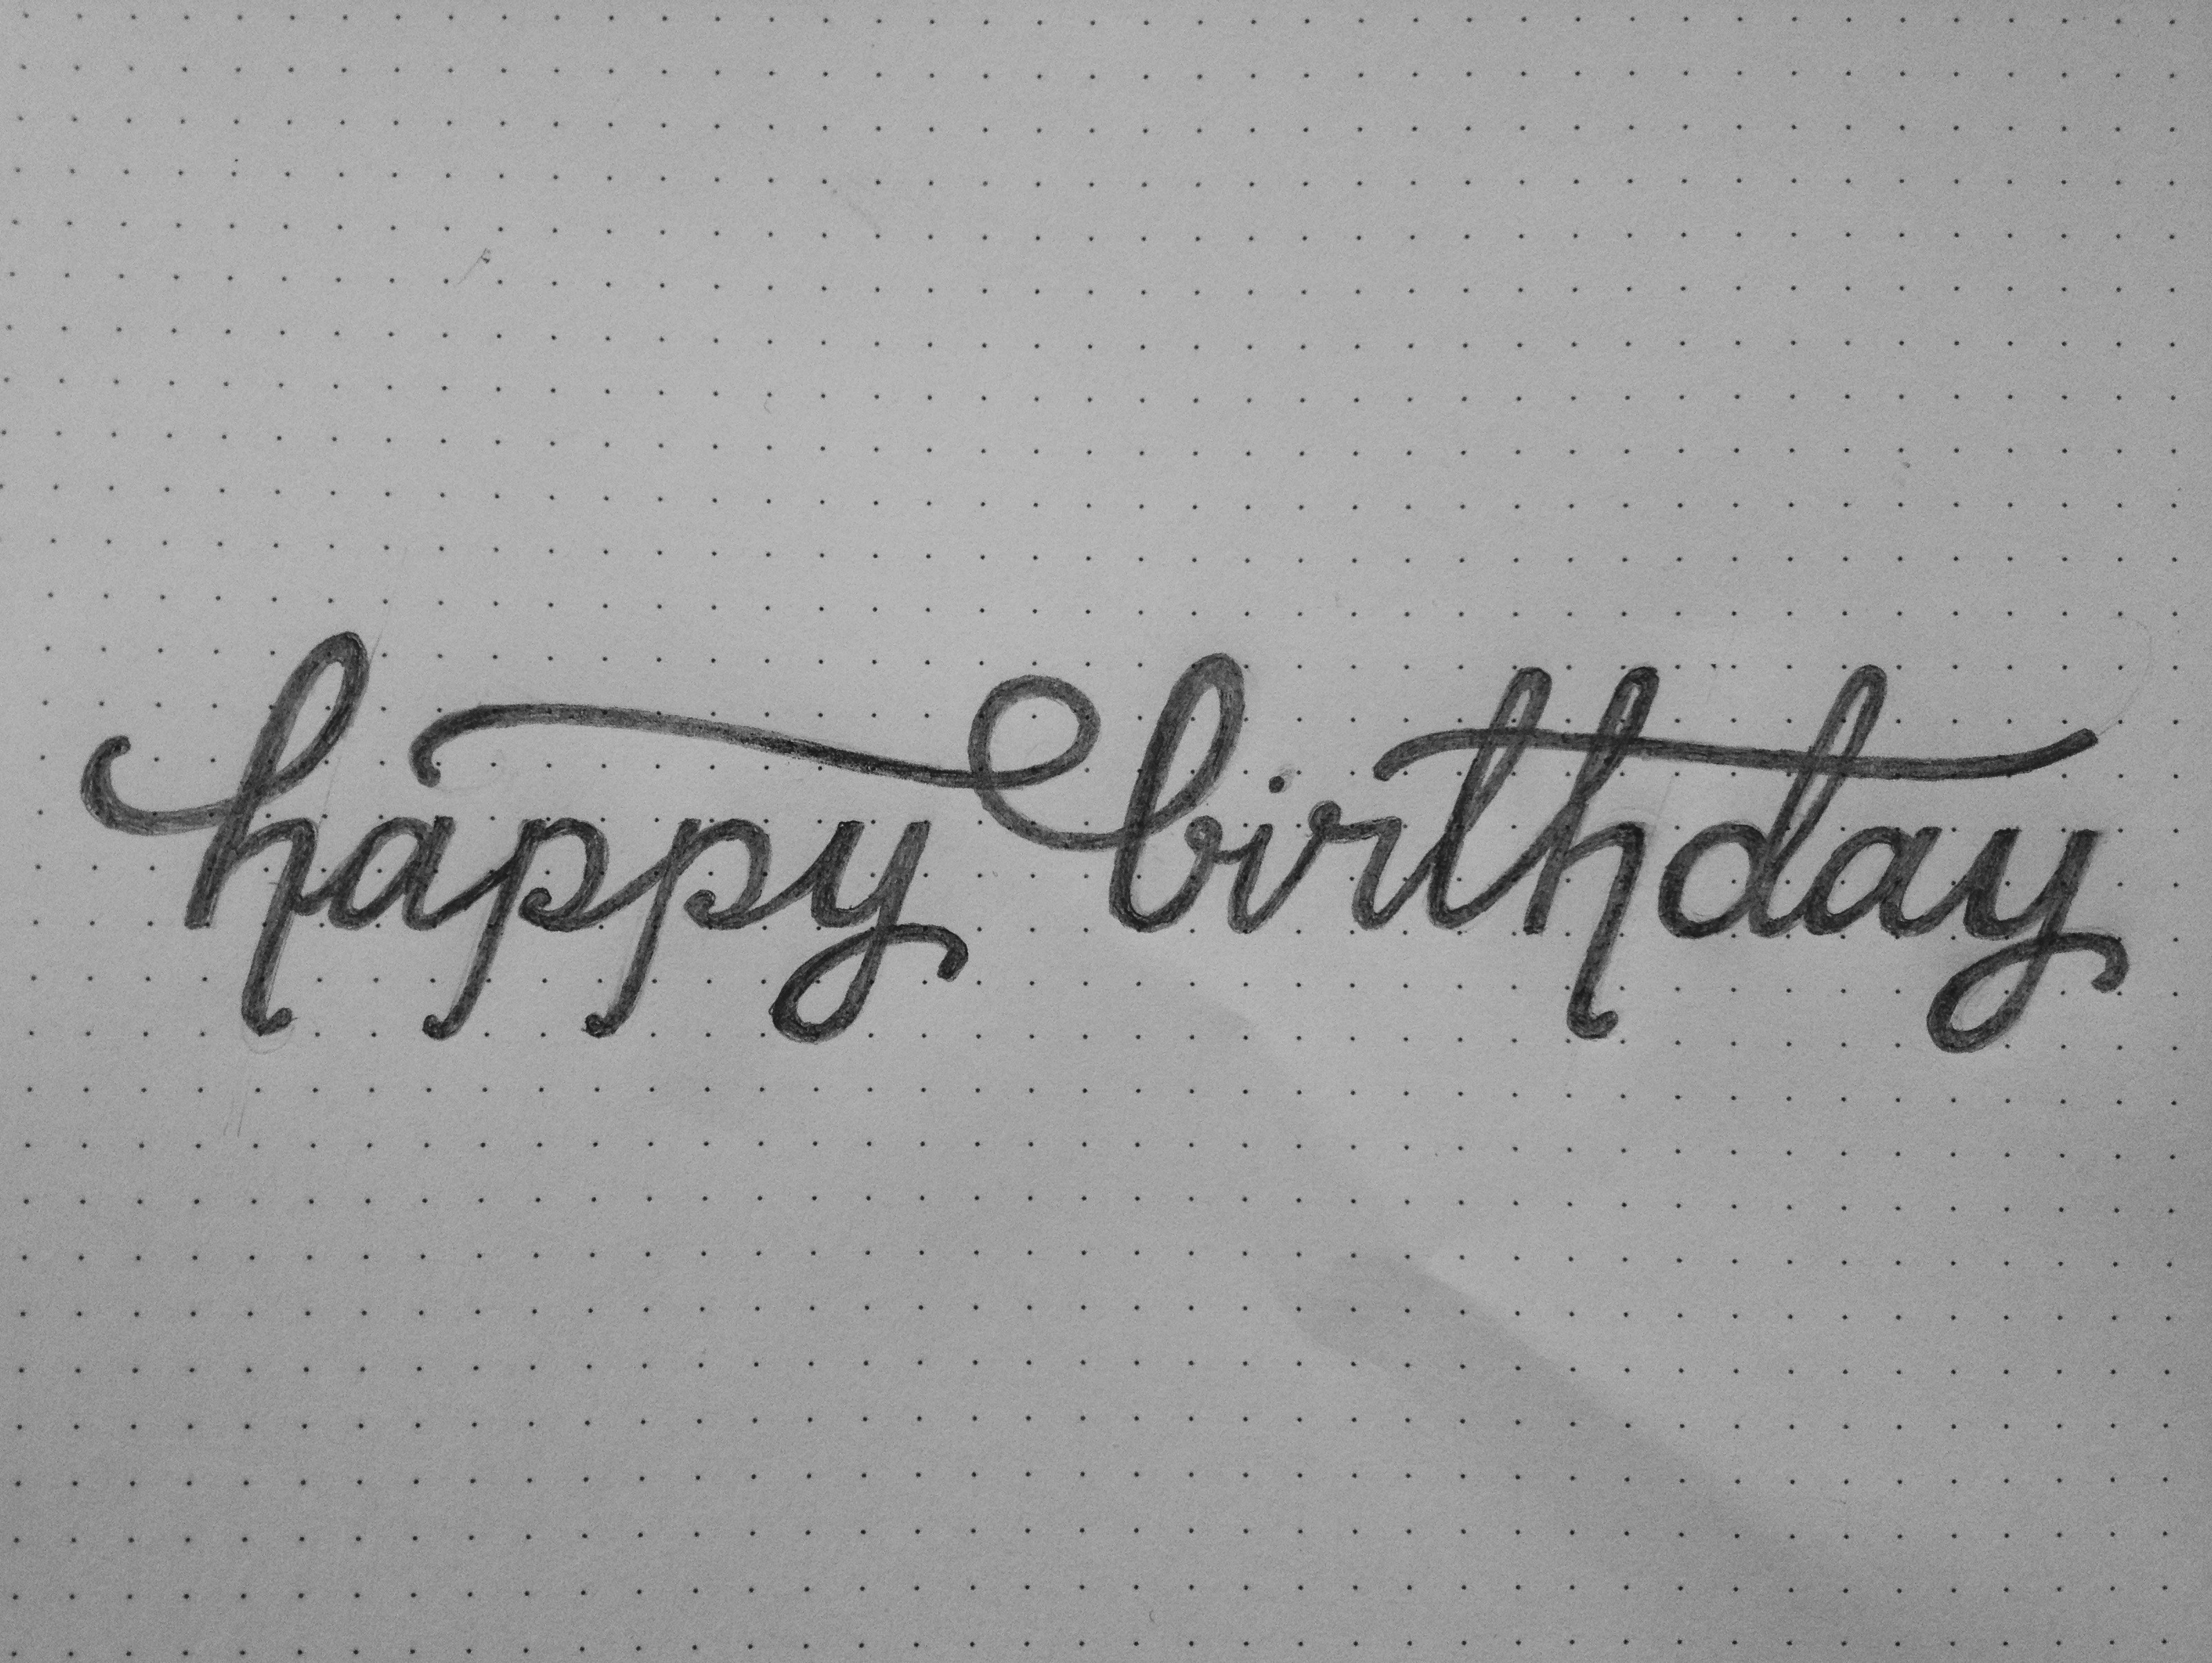 birthday pencil drawing ; pencil-sketches-for-birthday-happy-birthday-pencil-sketch-06-21-13-handwriting-pinterest